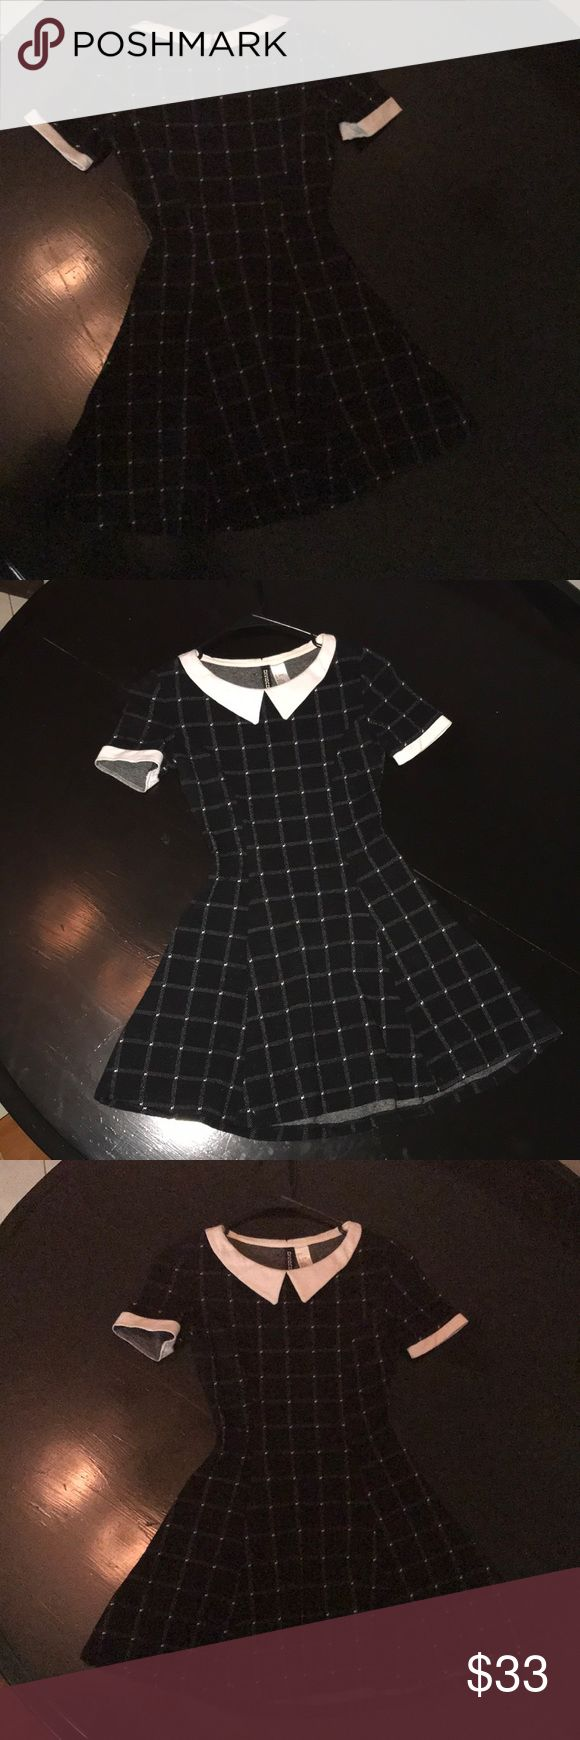 H&M Wednesday Addams Dress H&M black and white plaid short sleeve dress with collar and pleated skirt H&M Dresses